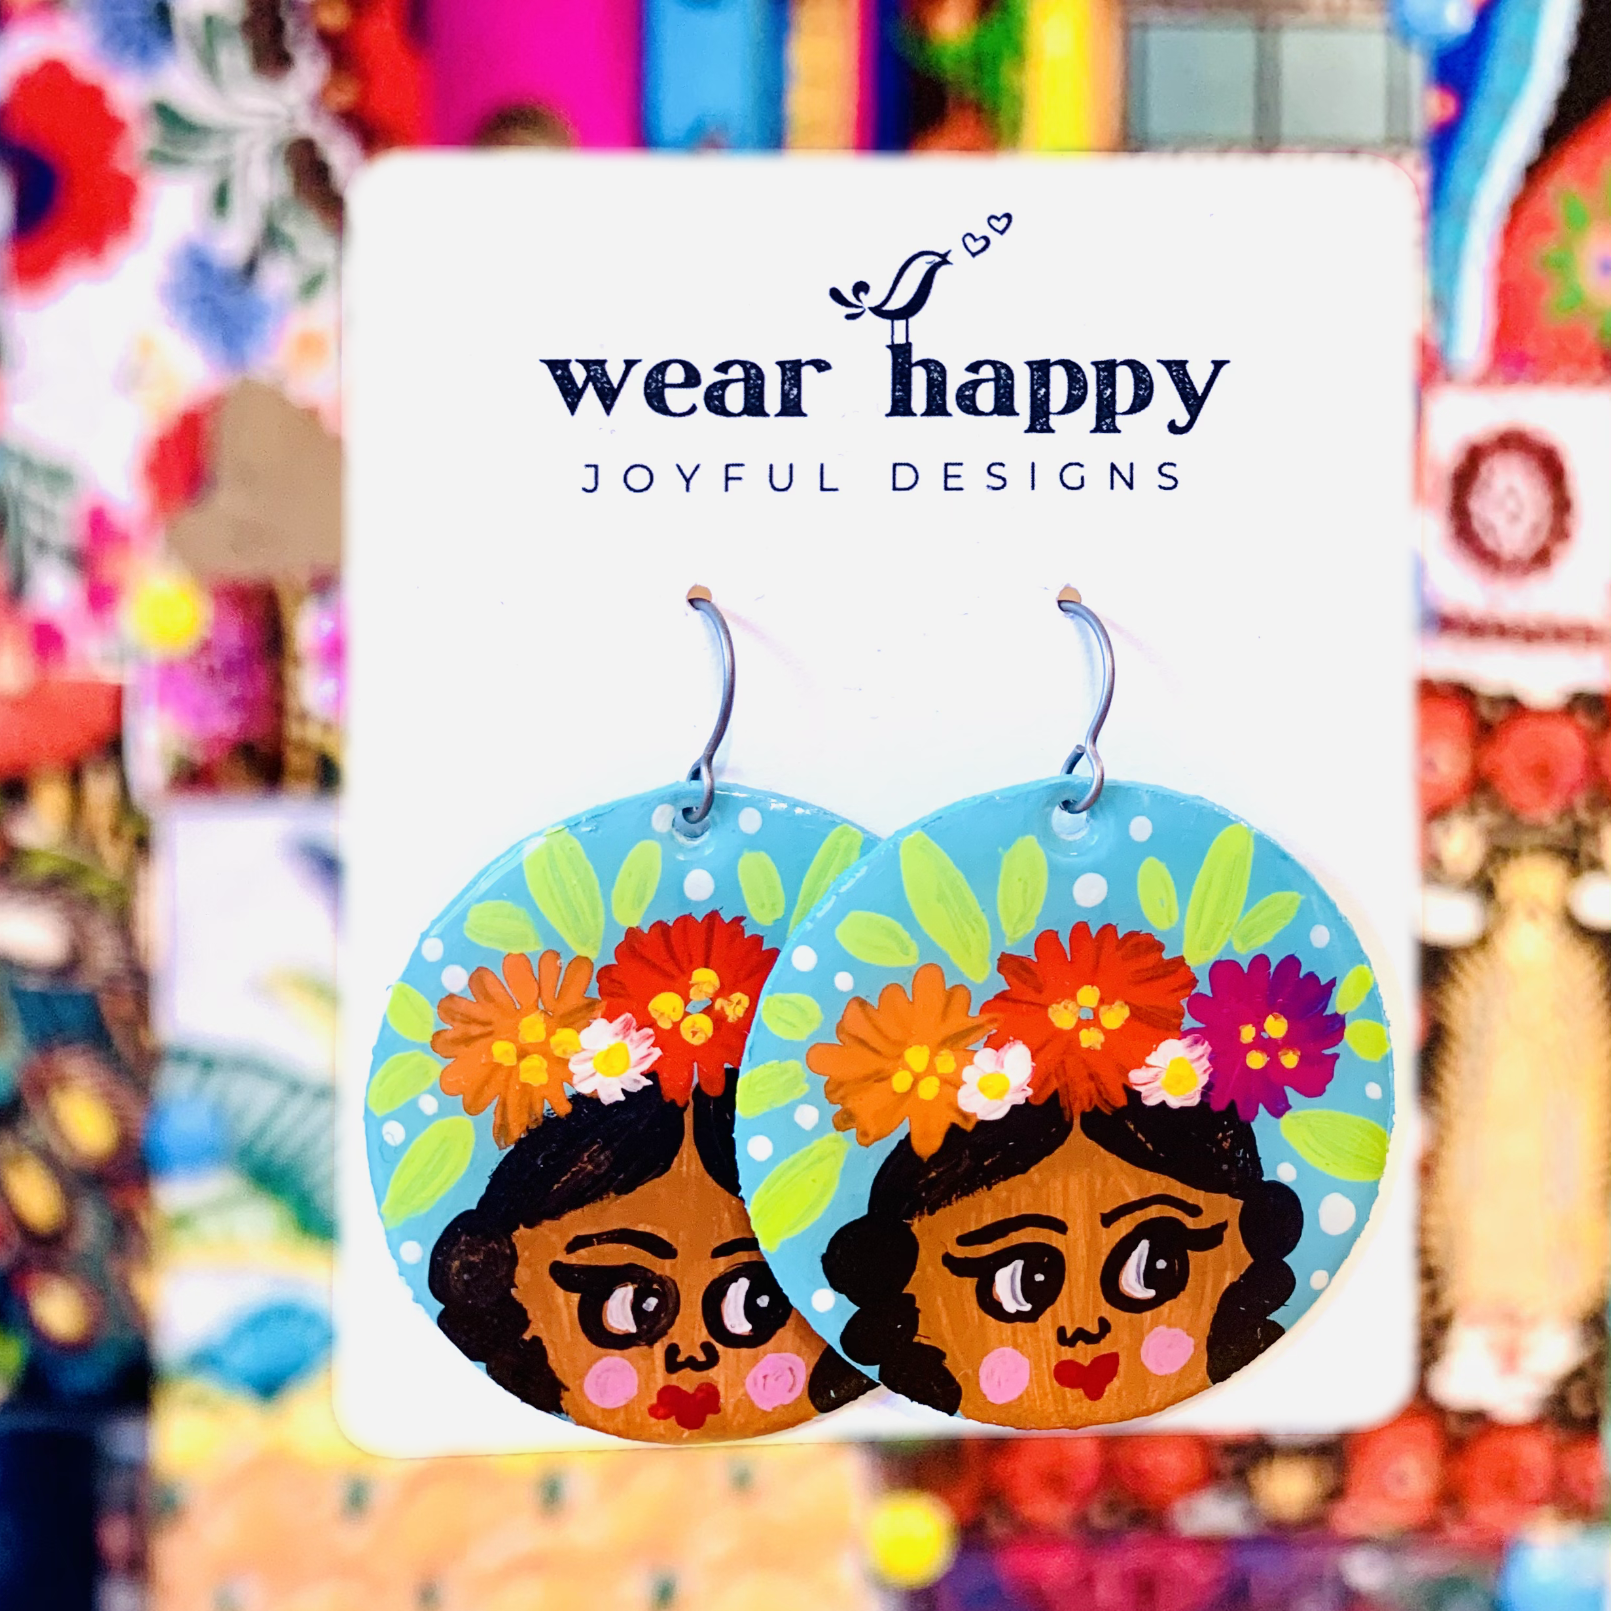 Wear Happy Joyful Designs